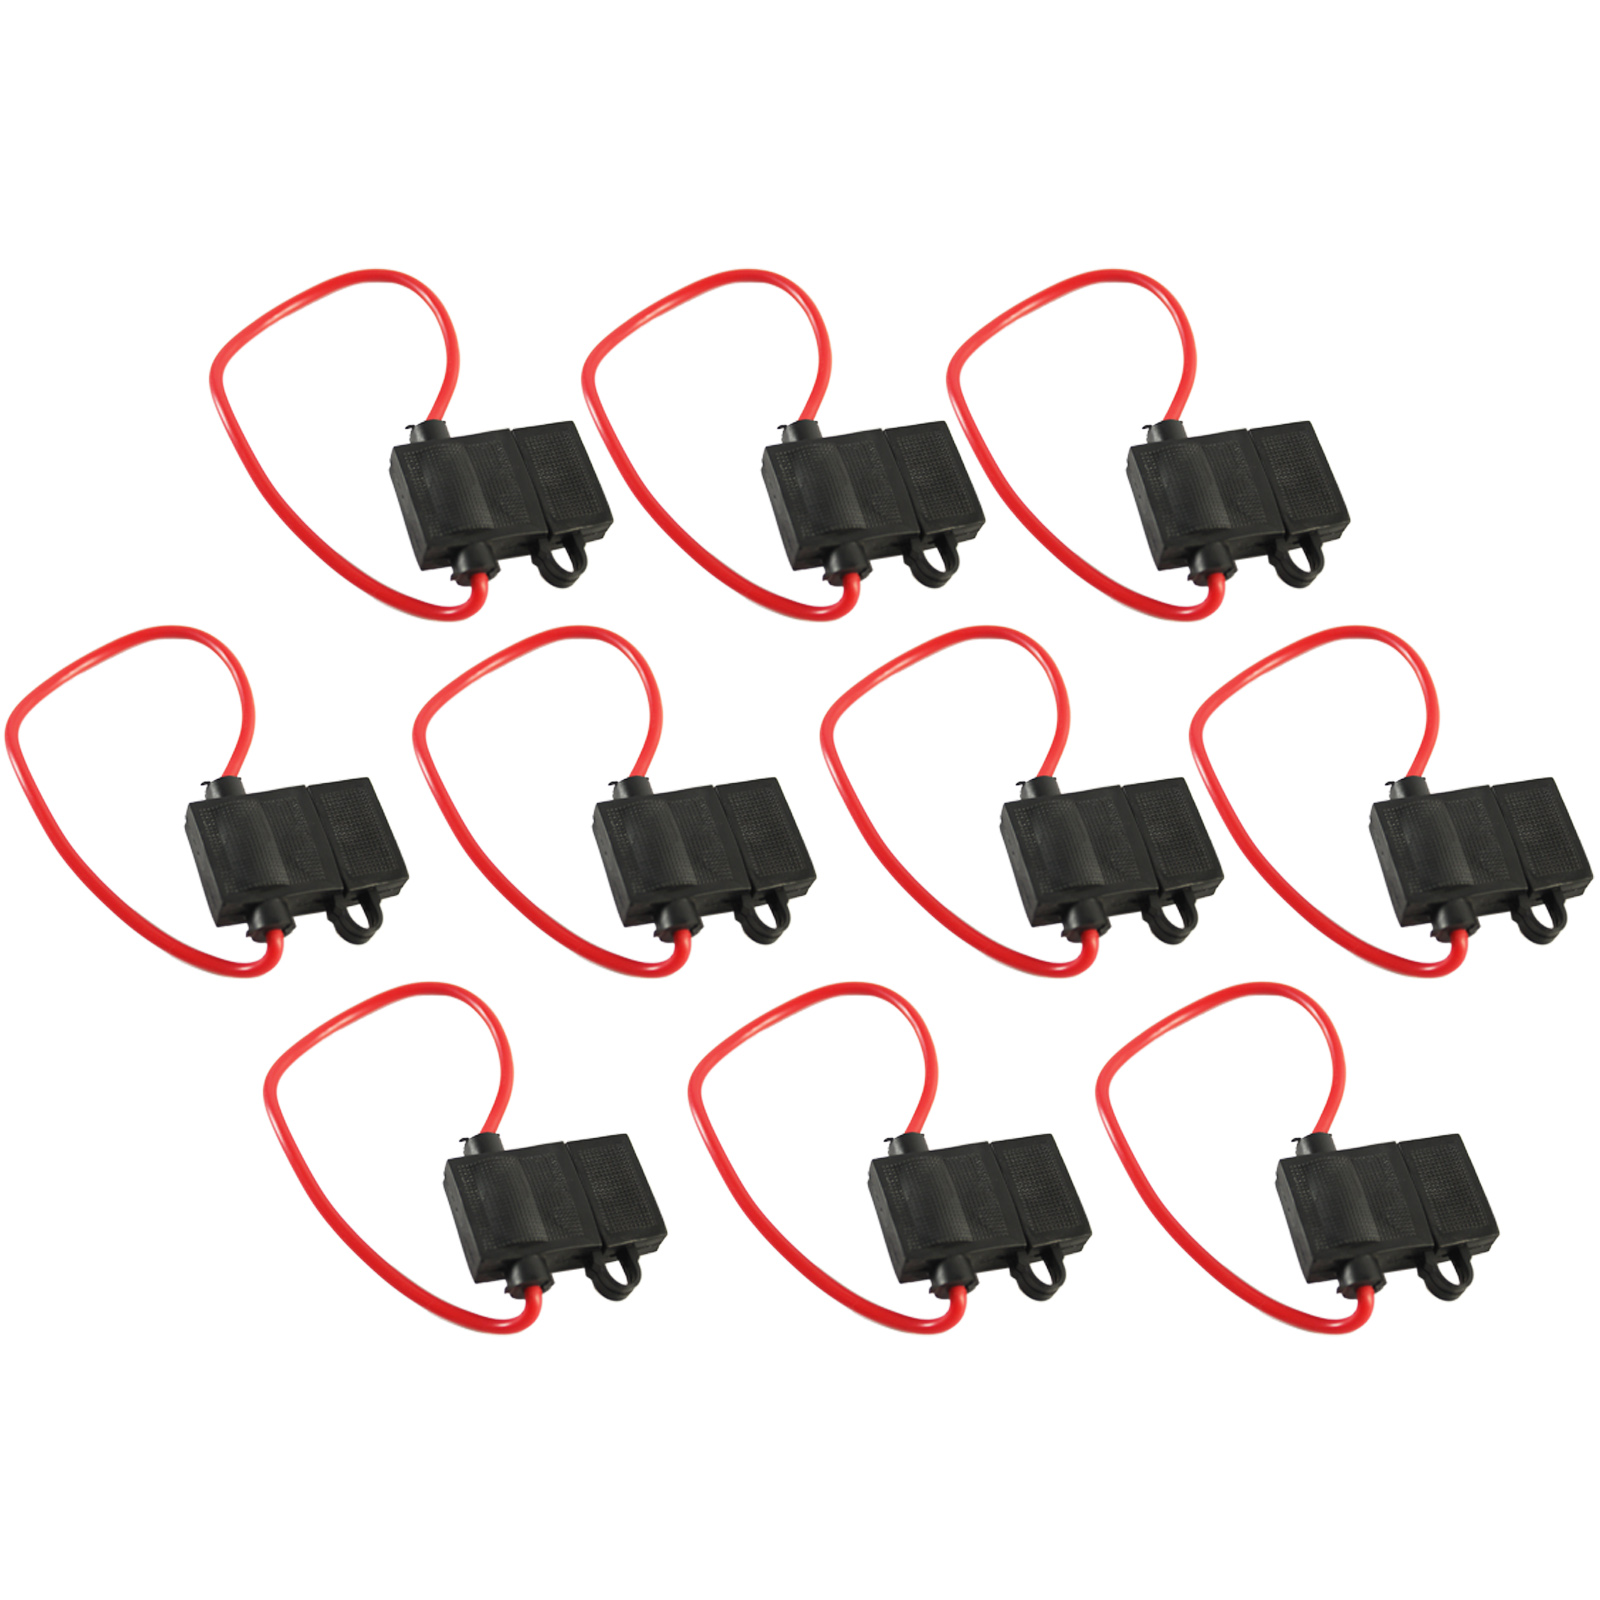 10 Pack In-Line Fuse Holder ATC//ATO Type Fuse Red Wire 16 Gauge 25AMP Blade Fuse